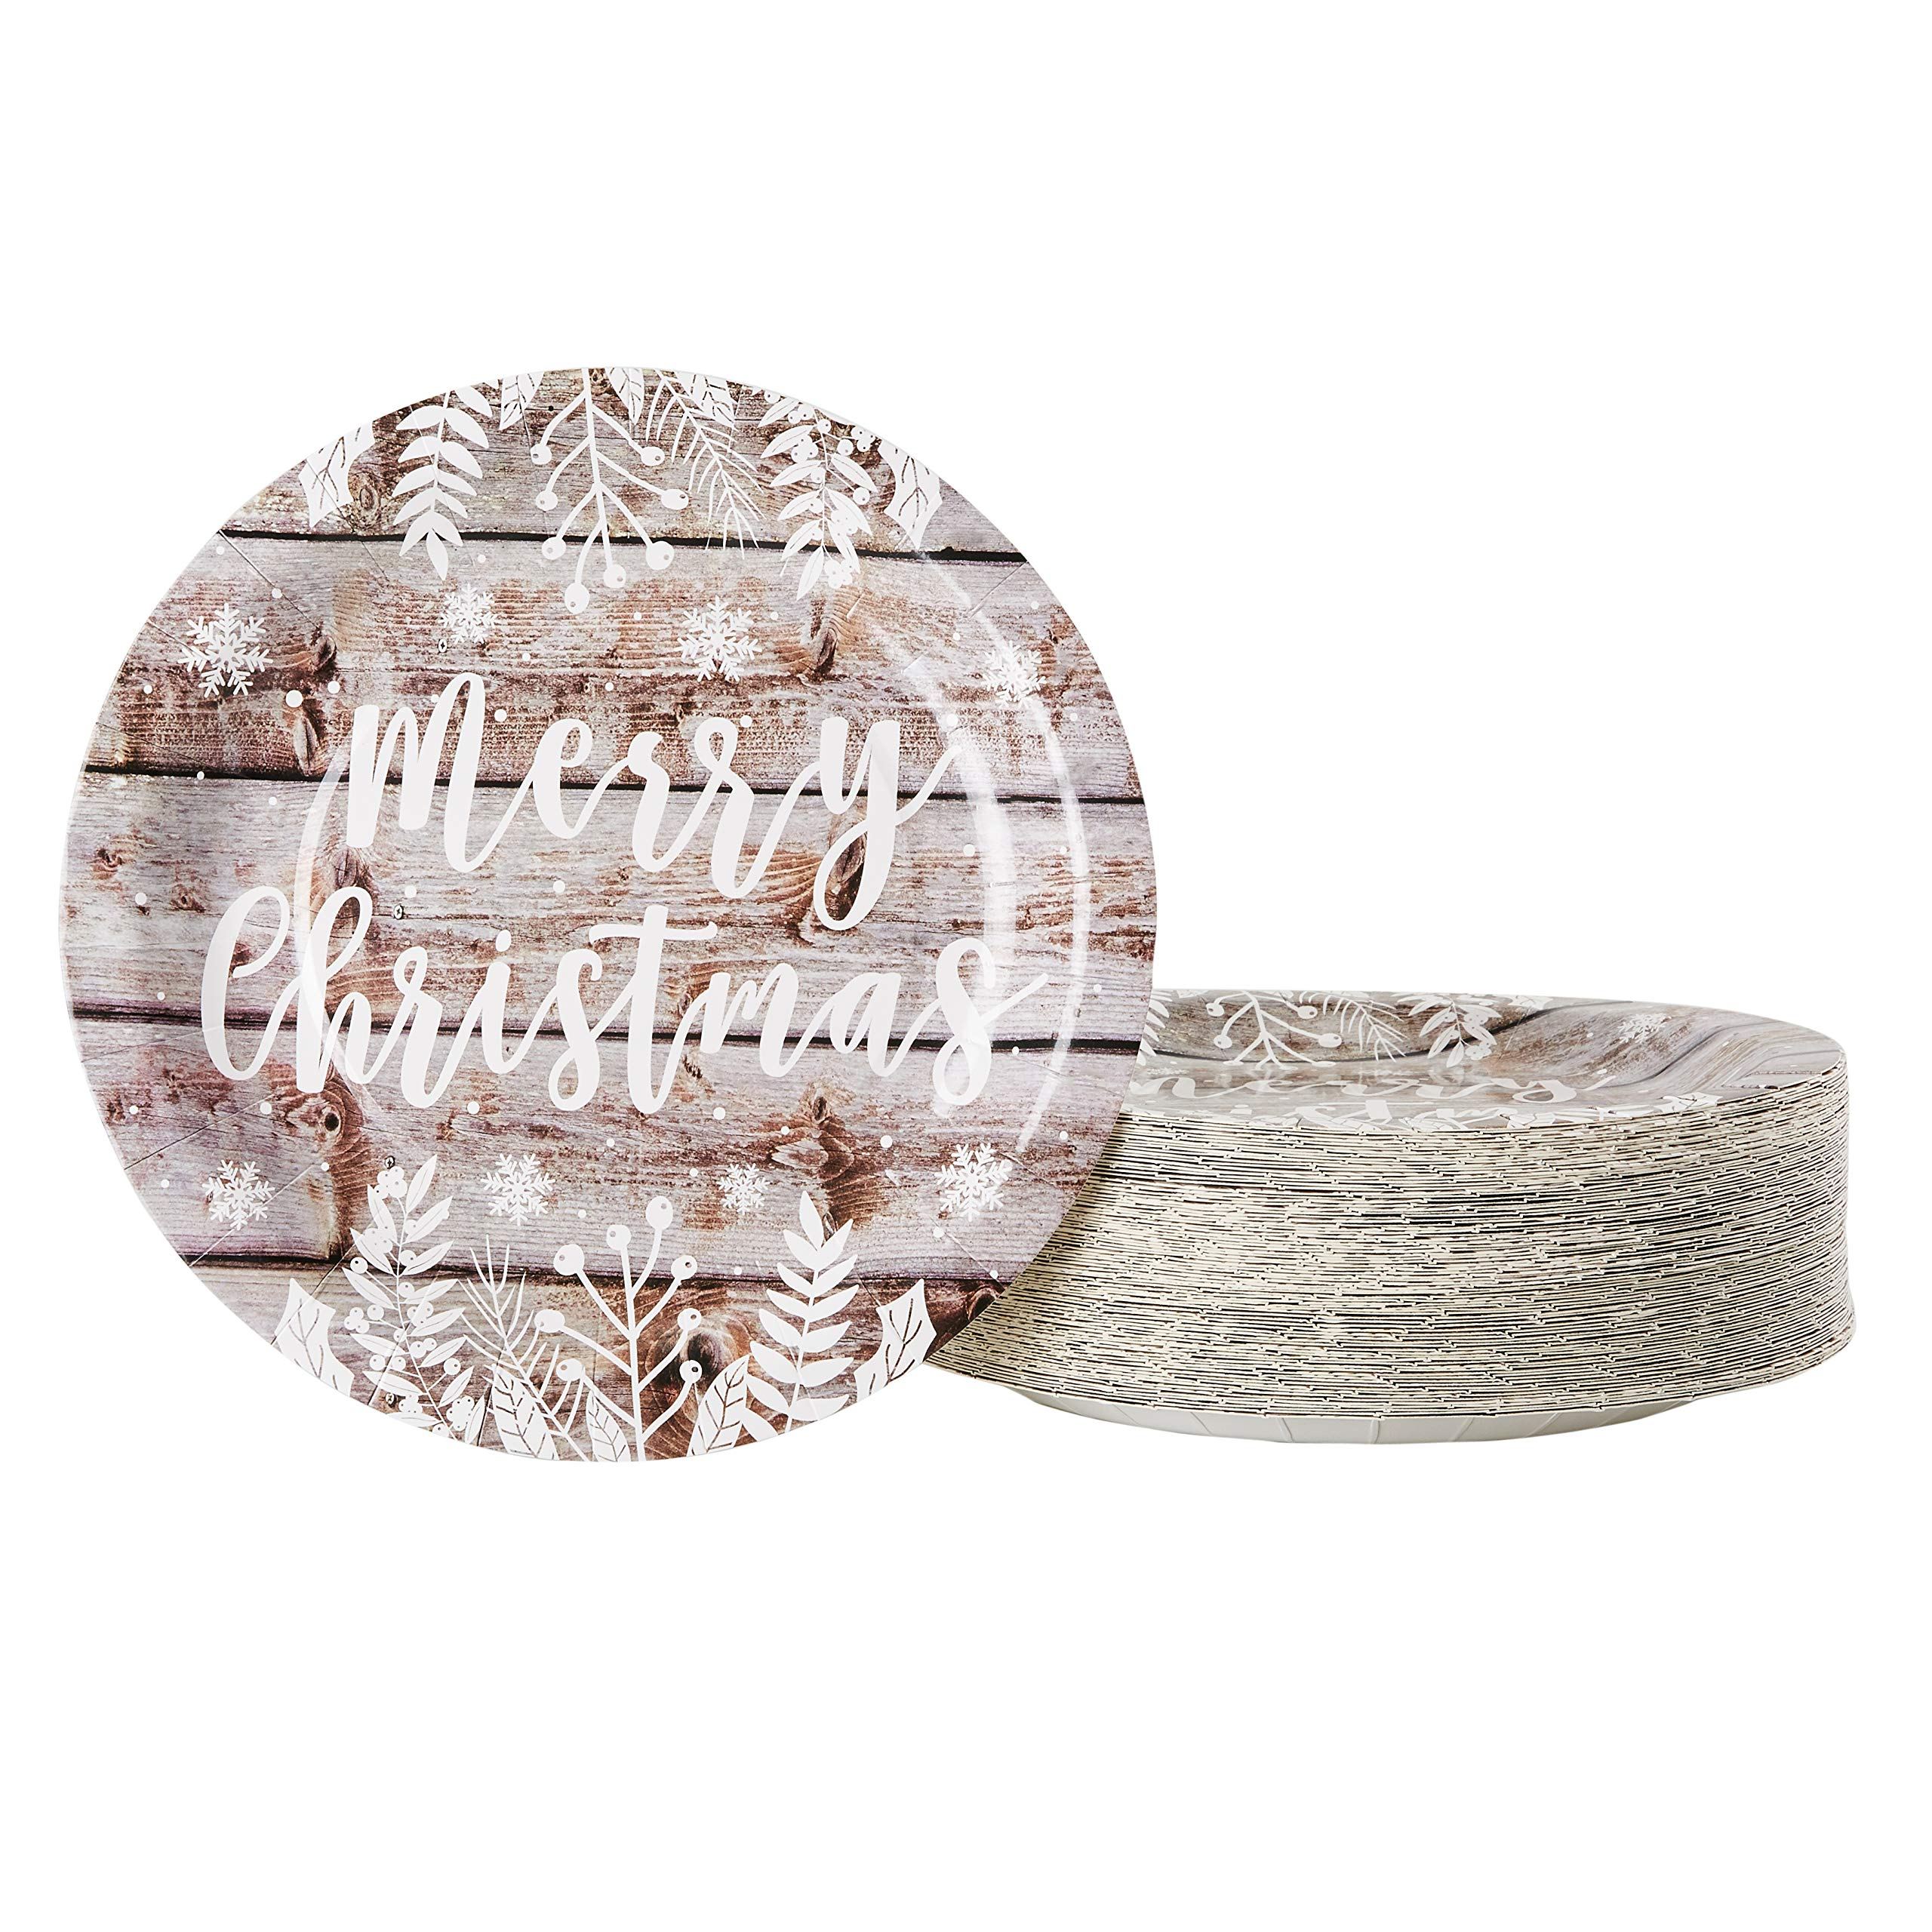 Disposable Plates - 80-Count Paper Plates, Christmas Holiday Party Supplies for Appetizer, Lunch, Dinner, Dessert, Vintage Wood Panel Merry Christmas Design, White, 9 Inches Diameter by Juvale